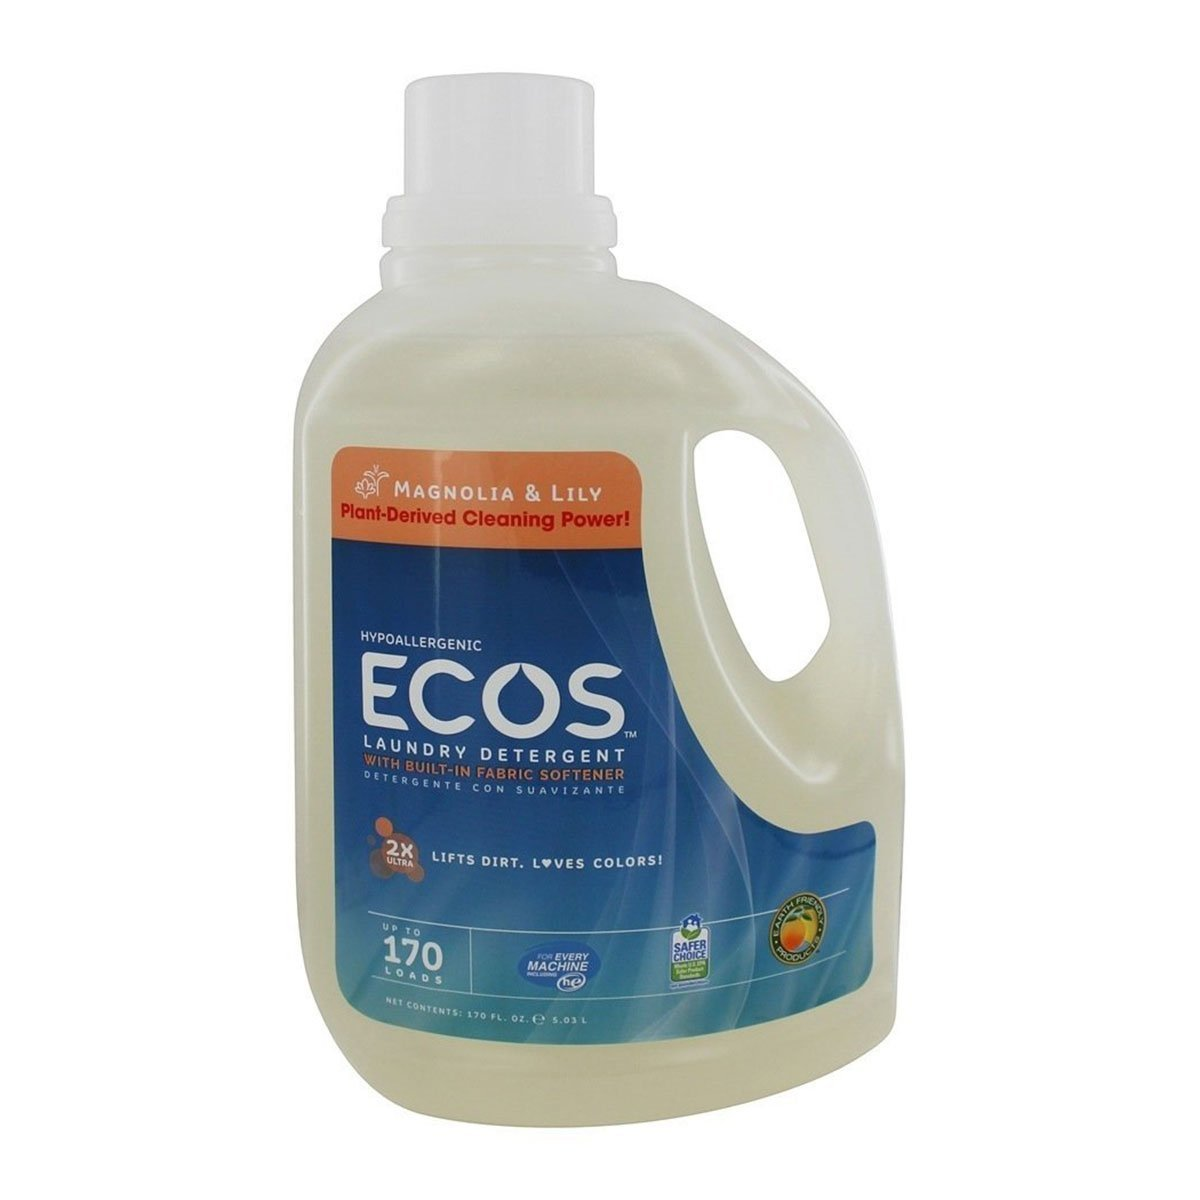 Earth Max 79% OFF Friendly 2X Ultra Ecos Laundry Deterge Trust Lilies Magnolia and